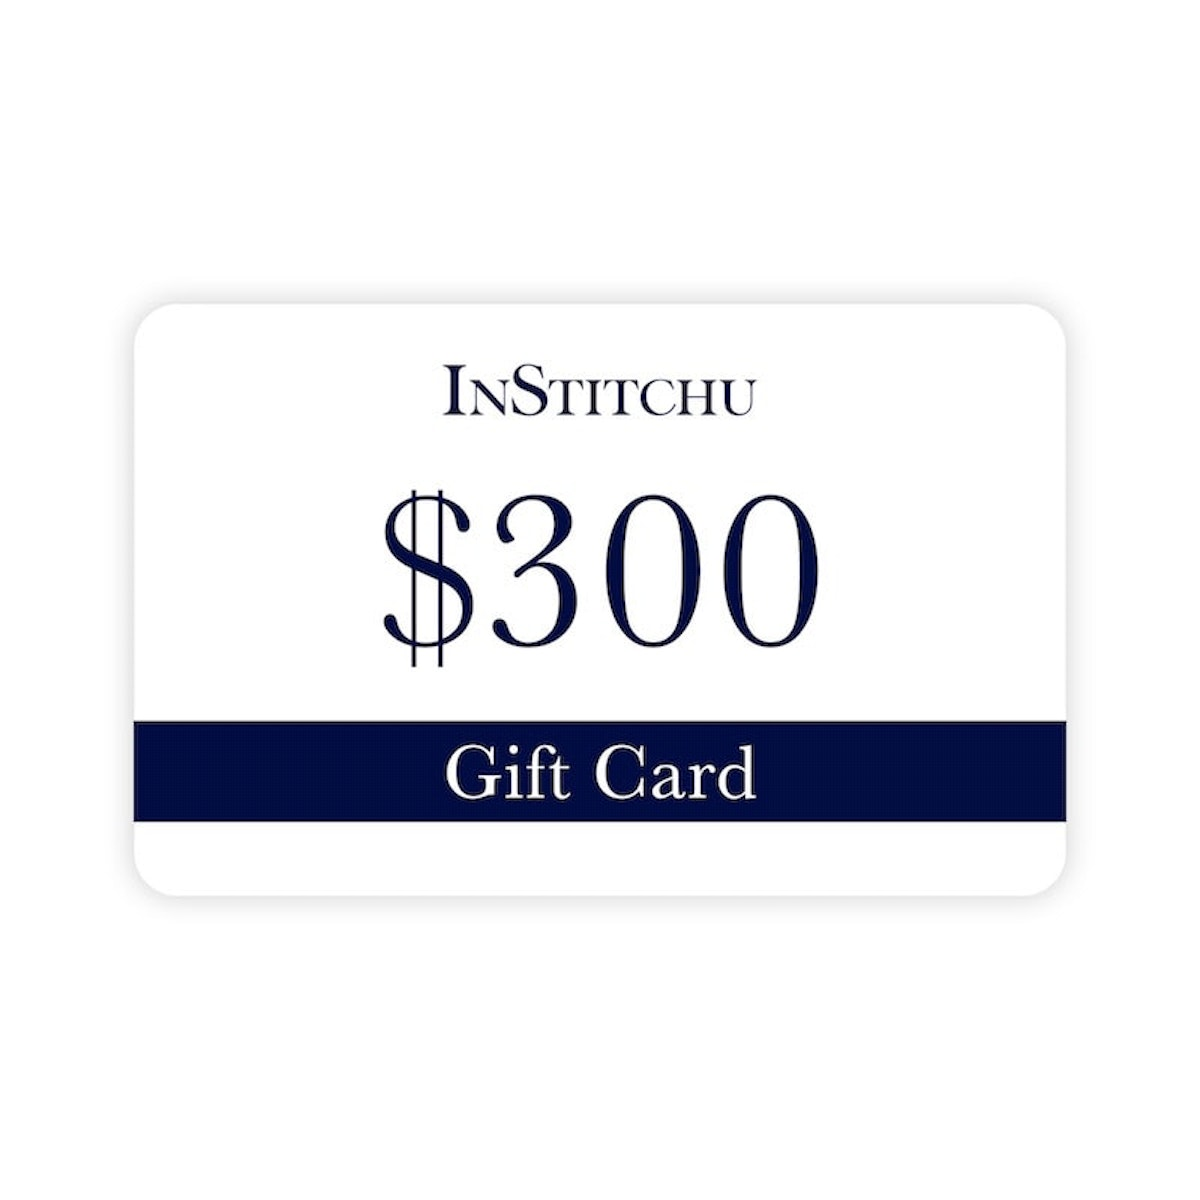 InStitchu Physical Gift Card $300